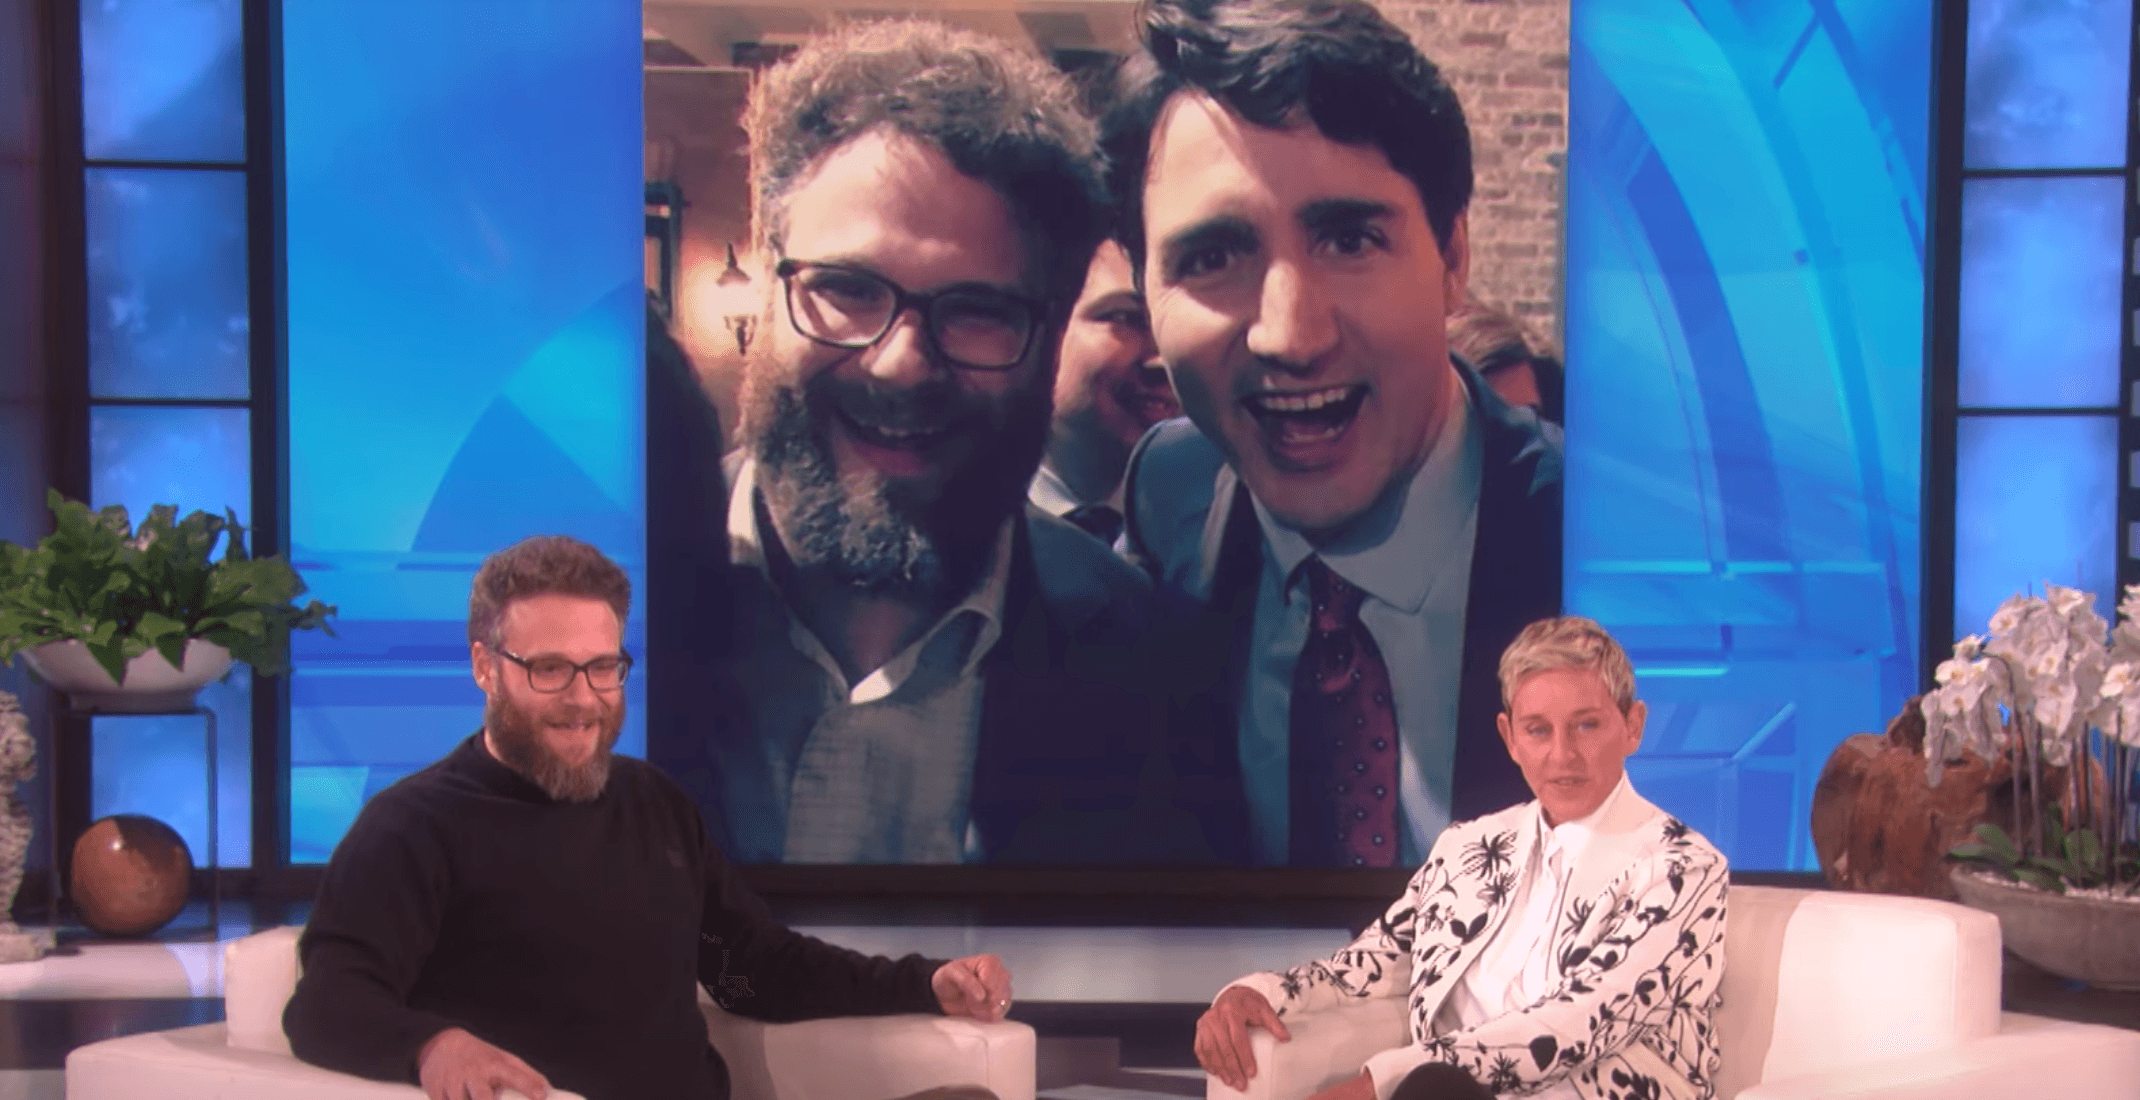 Seth Rogen tells Ellen the difference between meeting Obama vs. Trudeau (VIDEO)